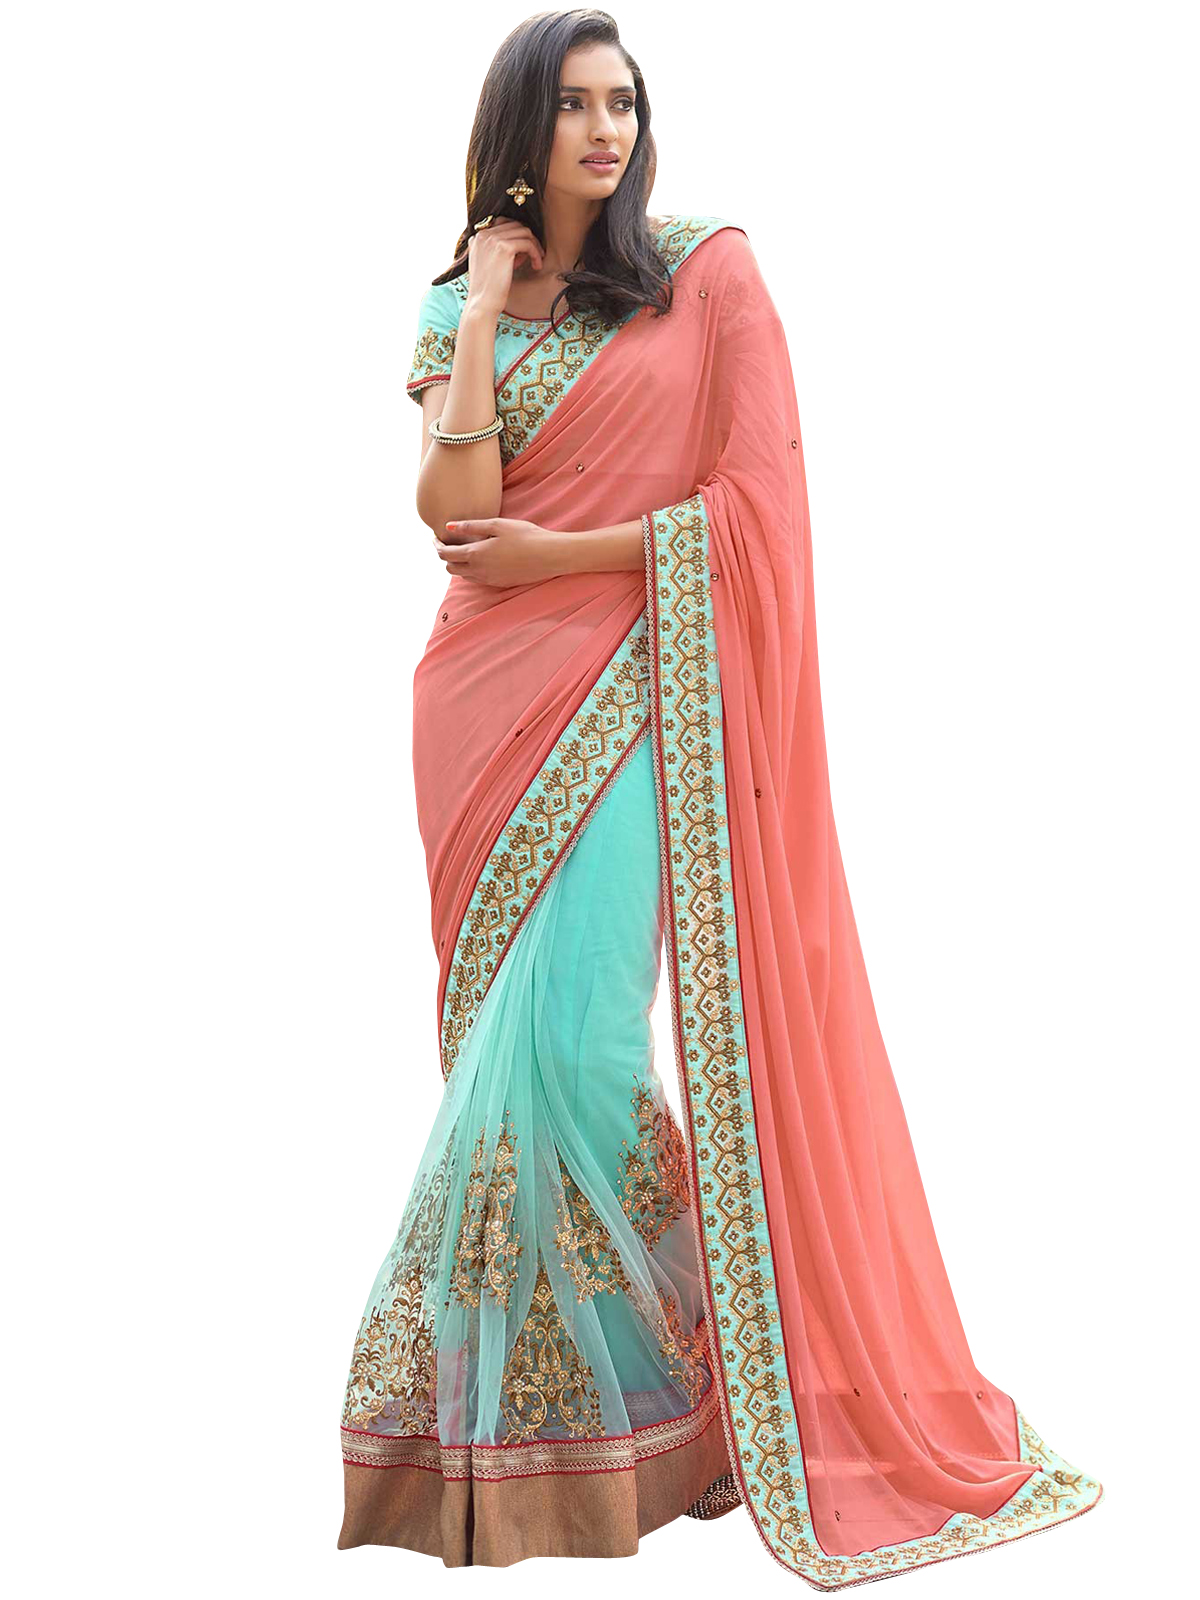 ce25a9cdcf9807 Peach & Blue embroidered georgette saree with blouse - Geet Fashion Solution  - 2562960